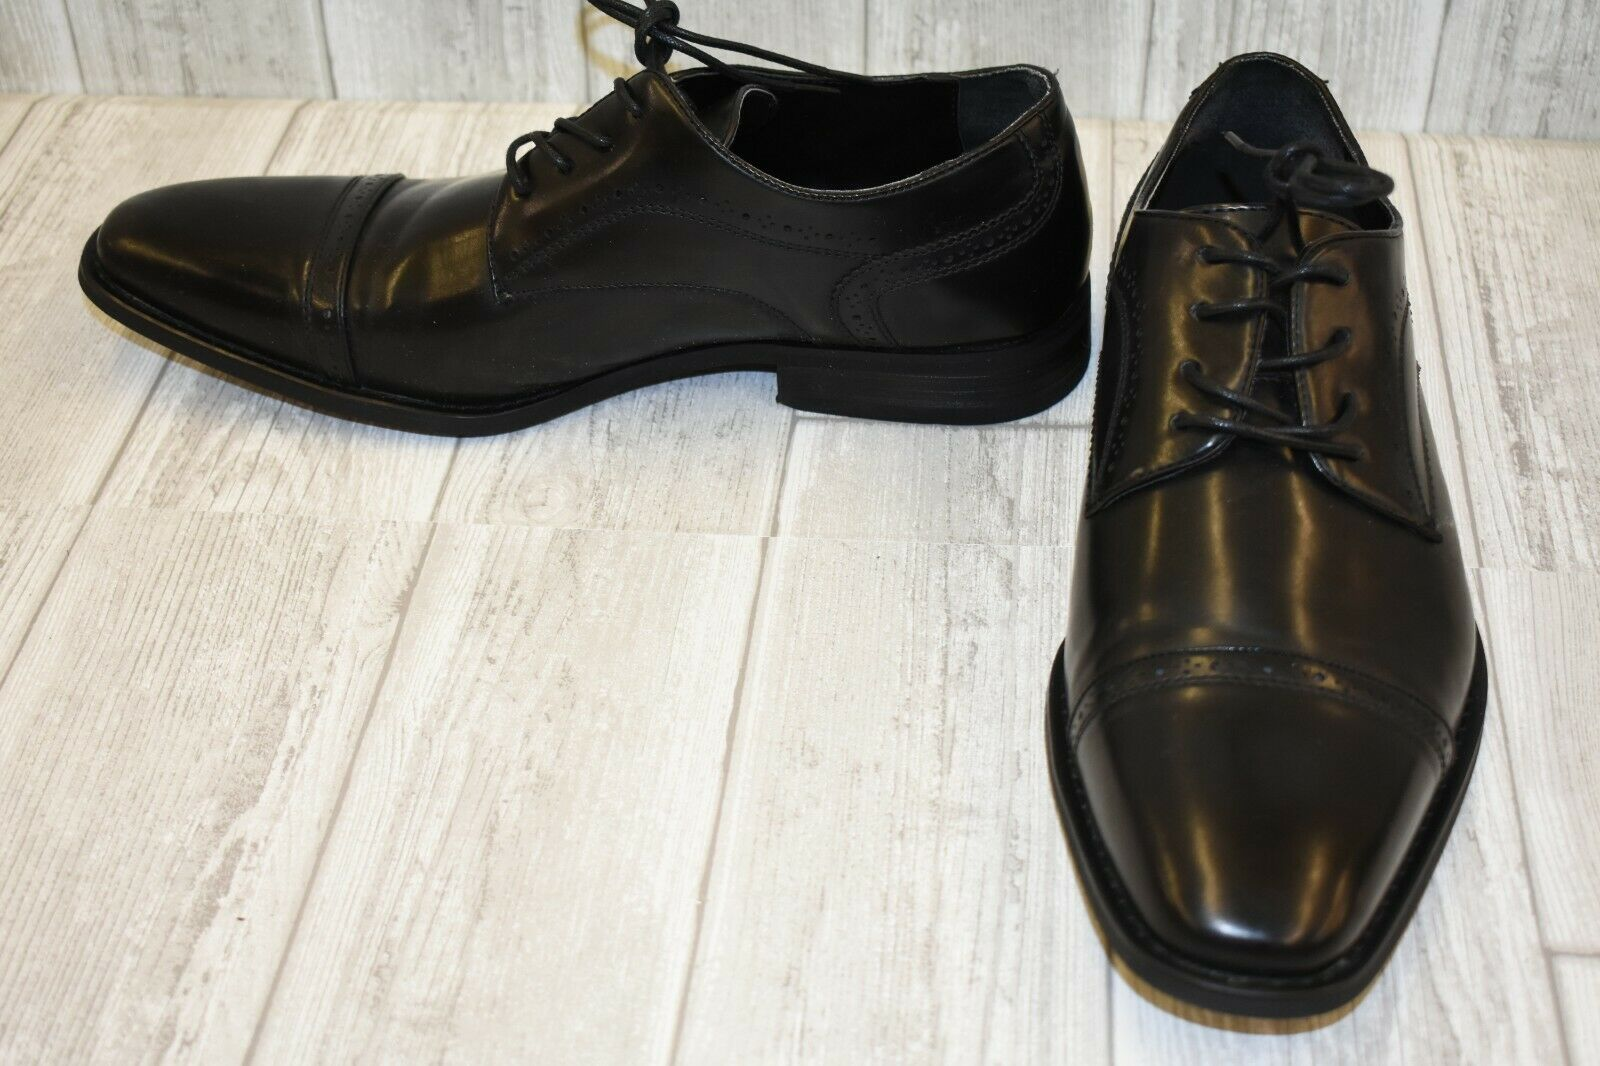 Kenneth Cole Unlisted Bryce Lace Up Oxford - Men's Size 11.5 M - Black